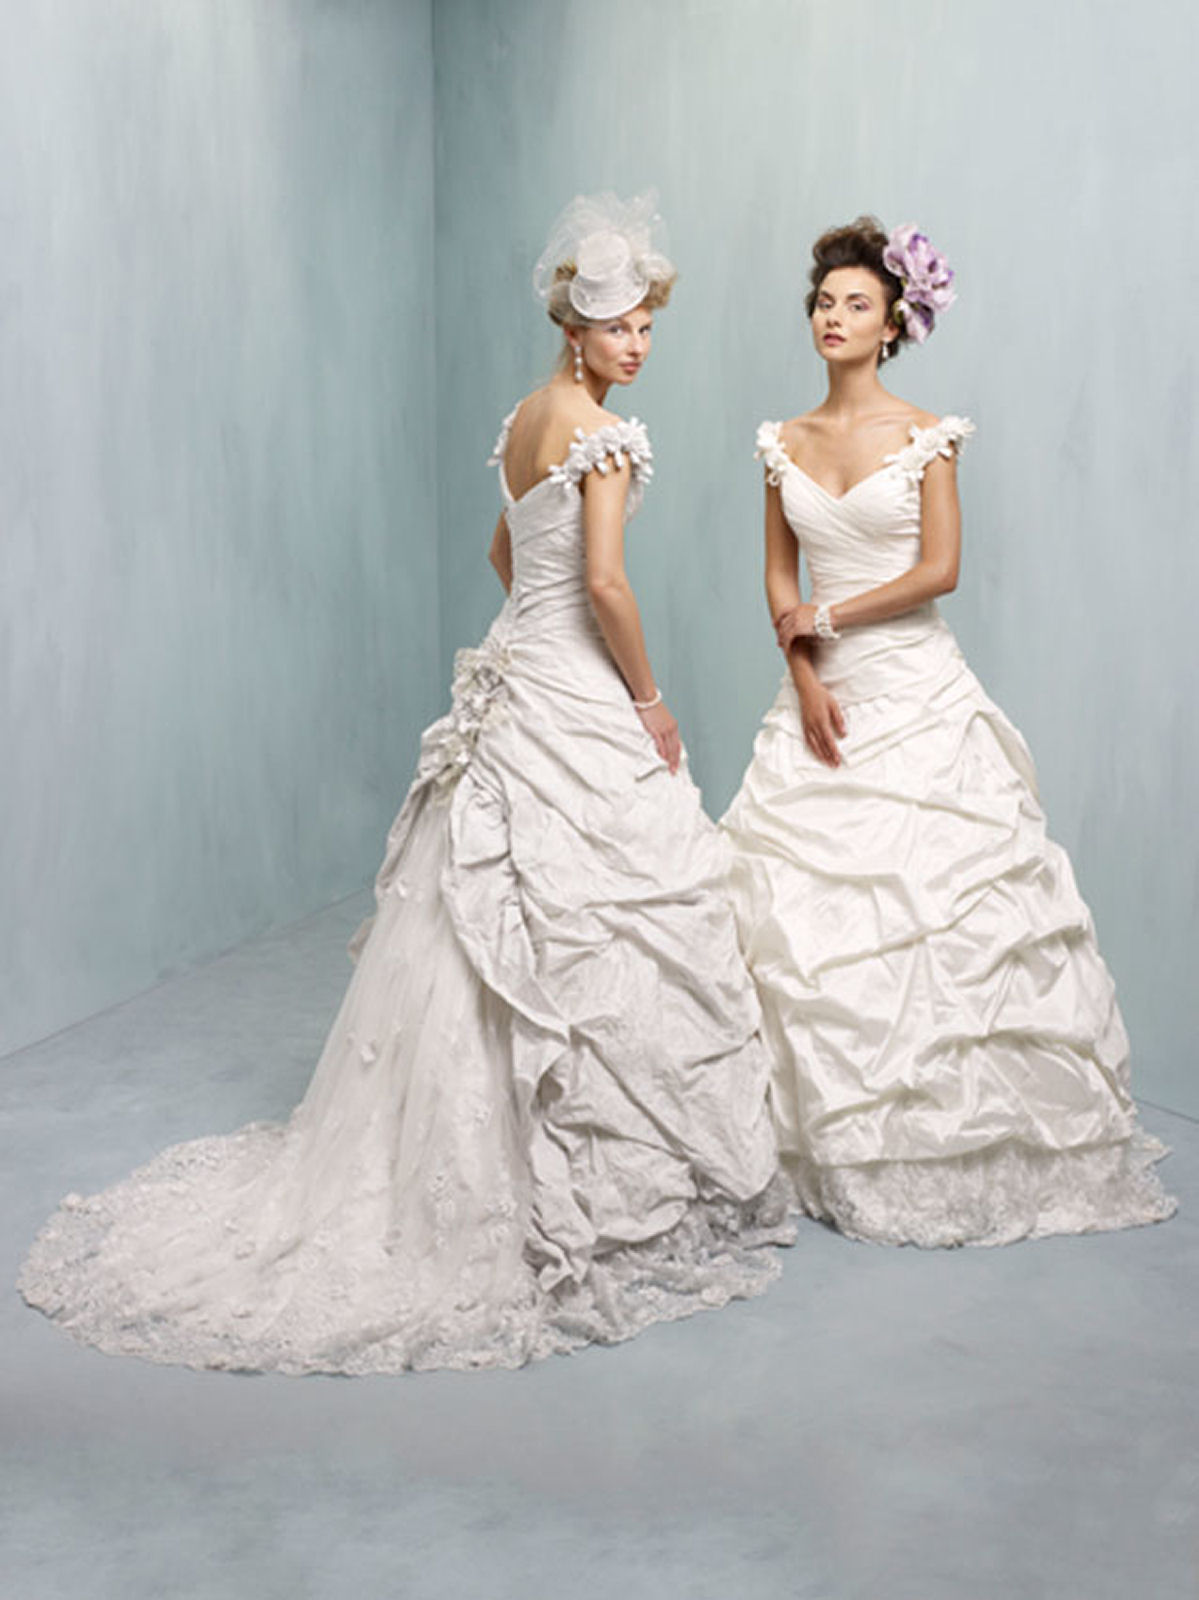 The Costume Rail: Anna Karenina: Chanel advert wins Best Costume BAFTA